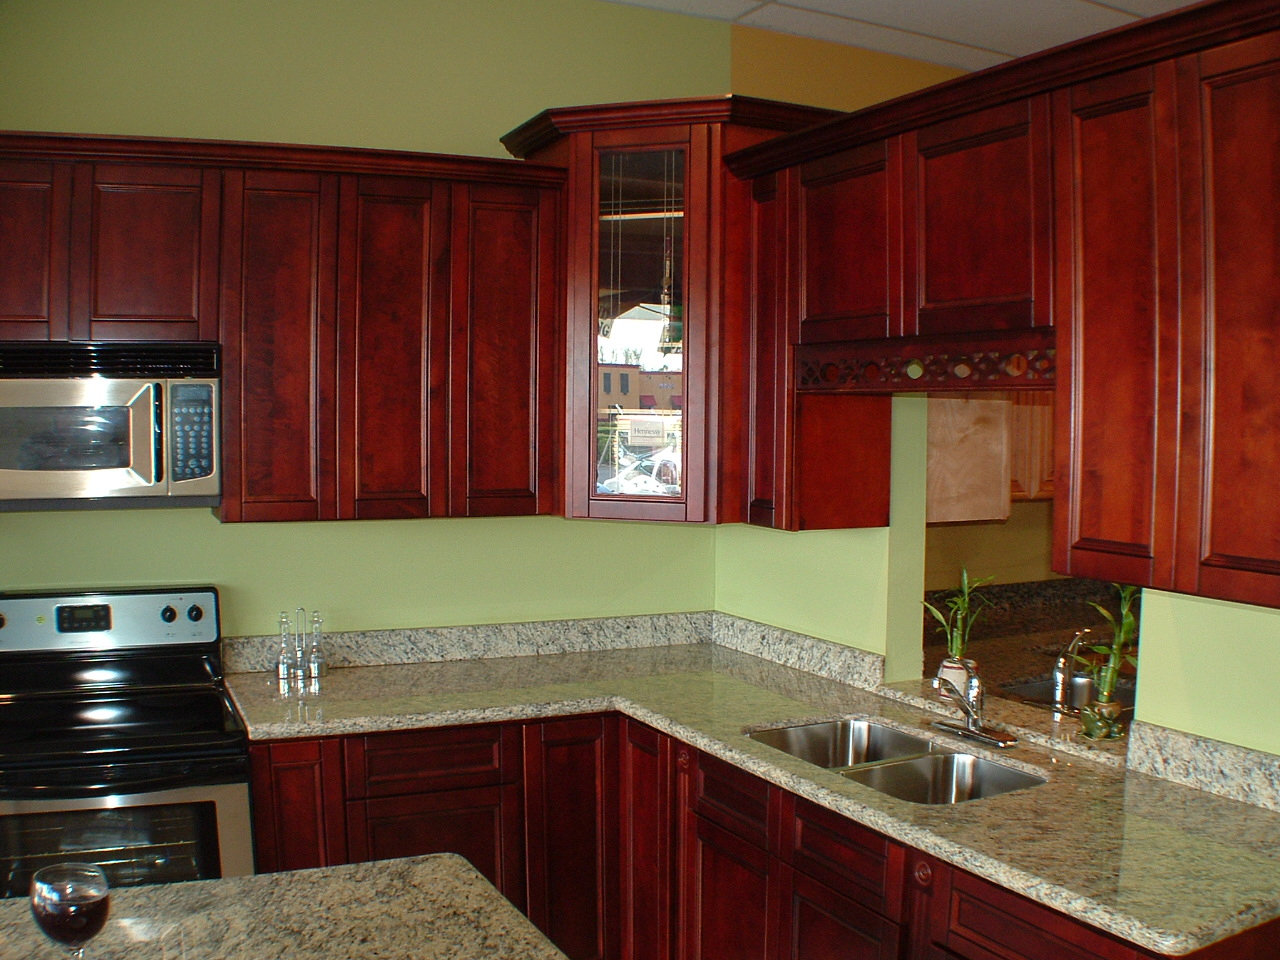 Kitchen Cabinets Cherry Wood The Best Types Of Wood For Building Cabinets The Basic